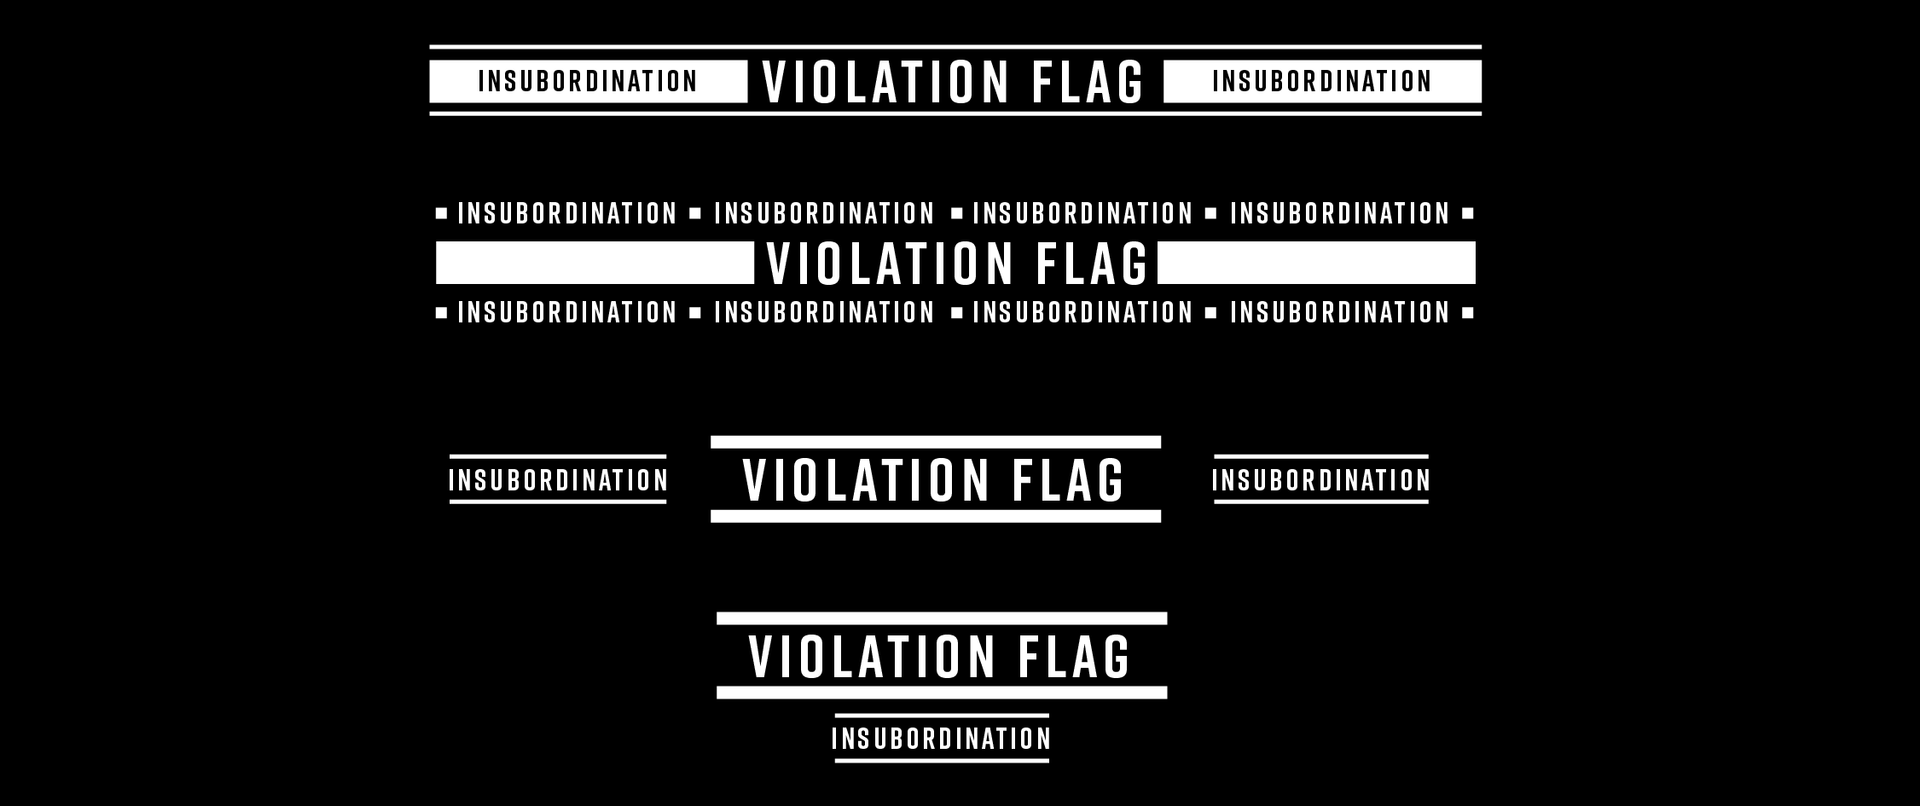 VIOLATION WARNINGS